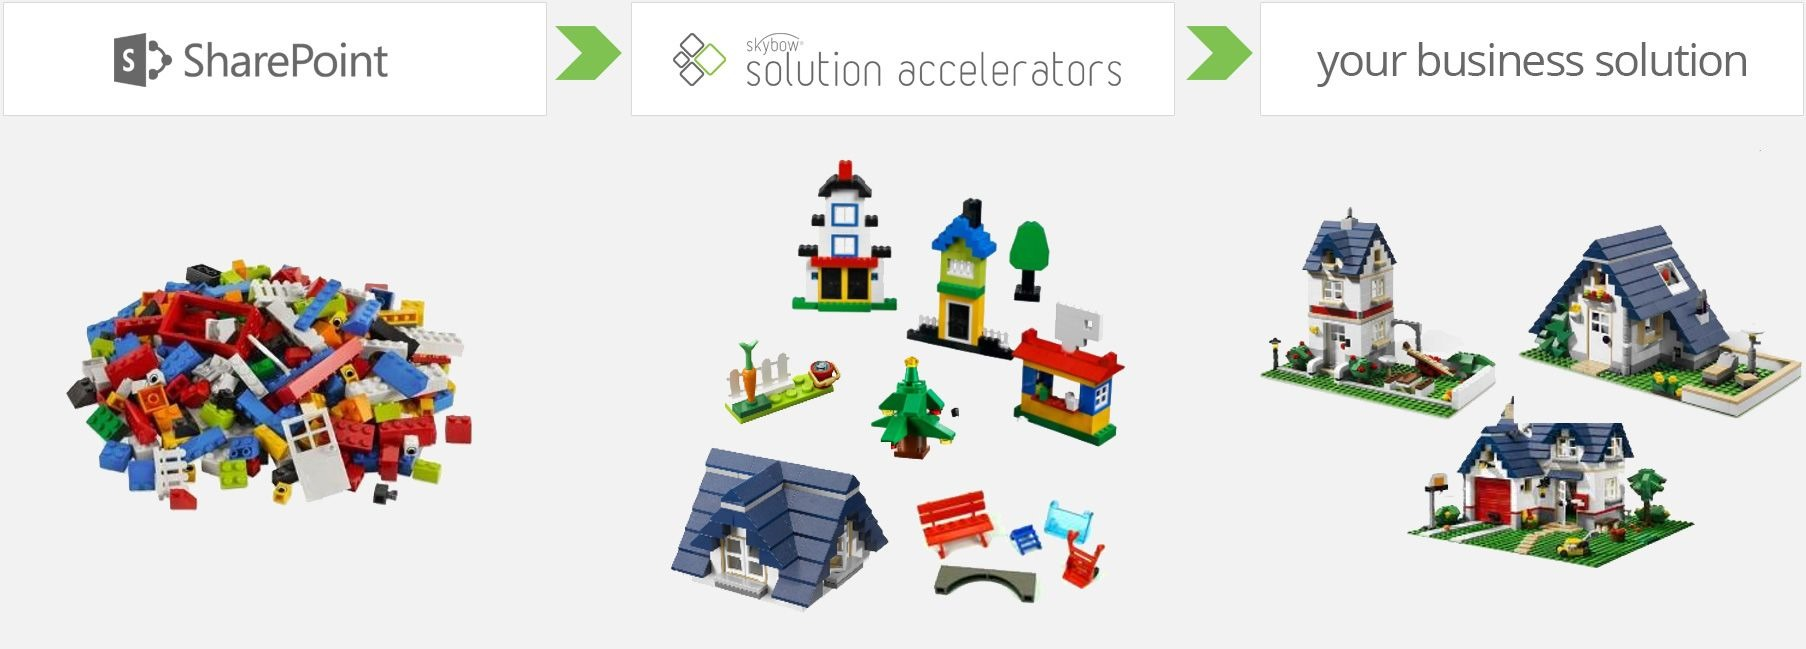 skybow-solution-accelerators-en